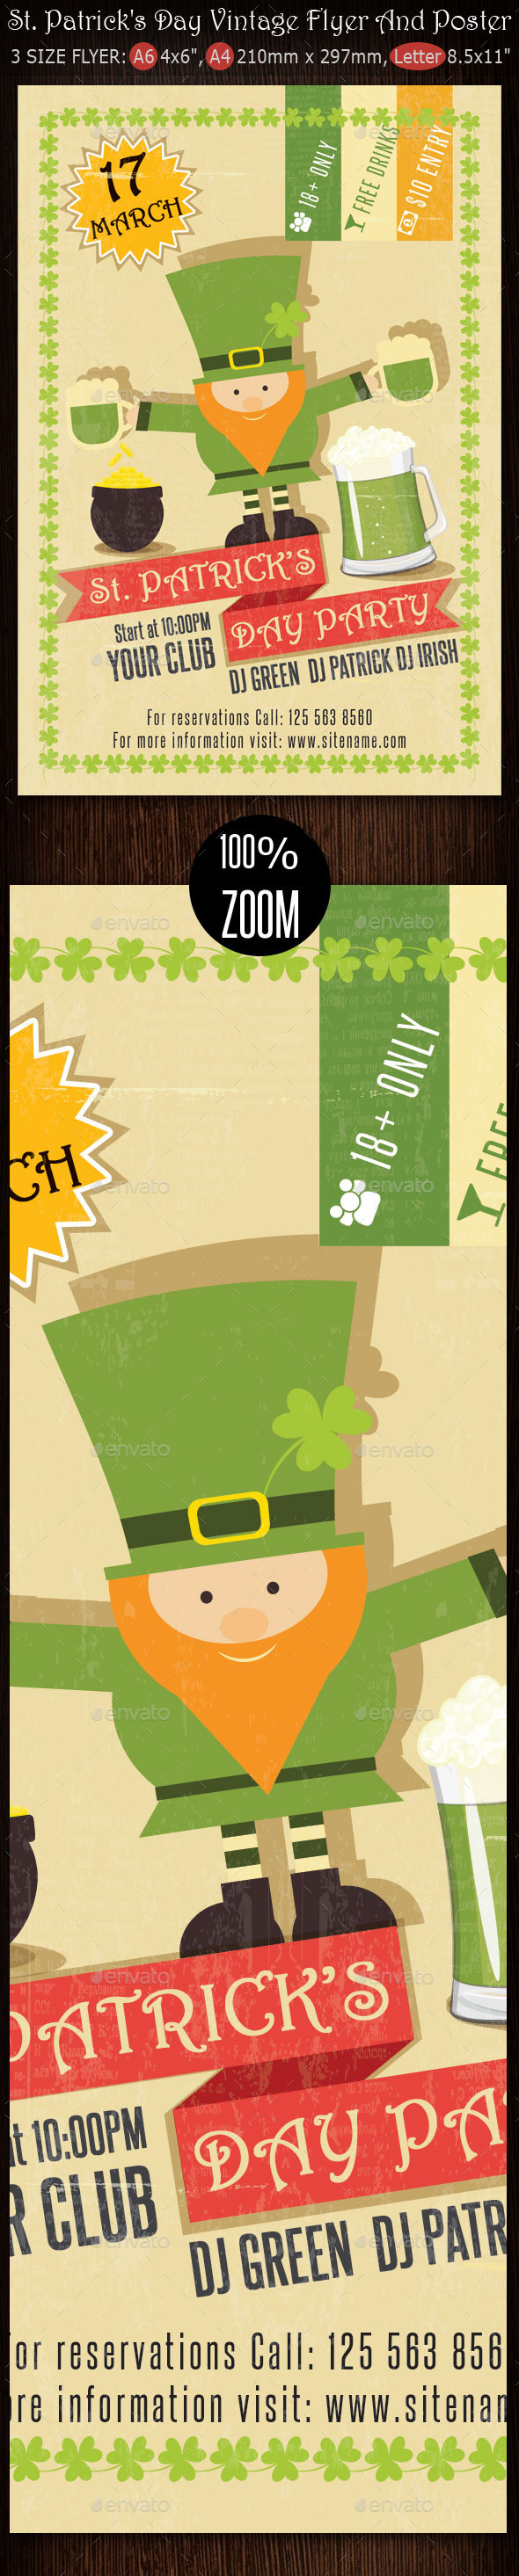 St. Patrick's Day Vintage Flyer And Poster - Clubs & Parties Events